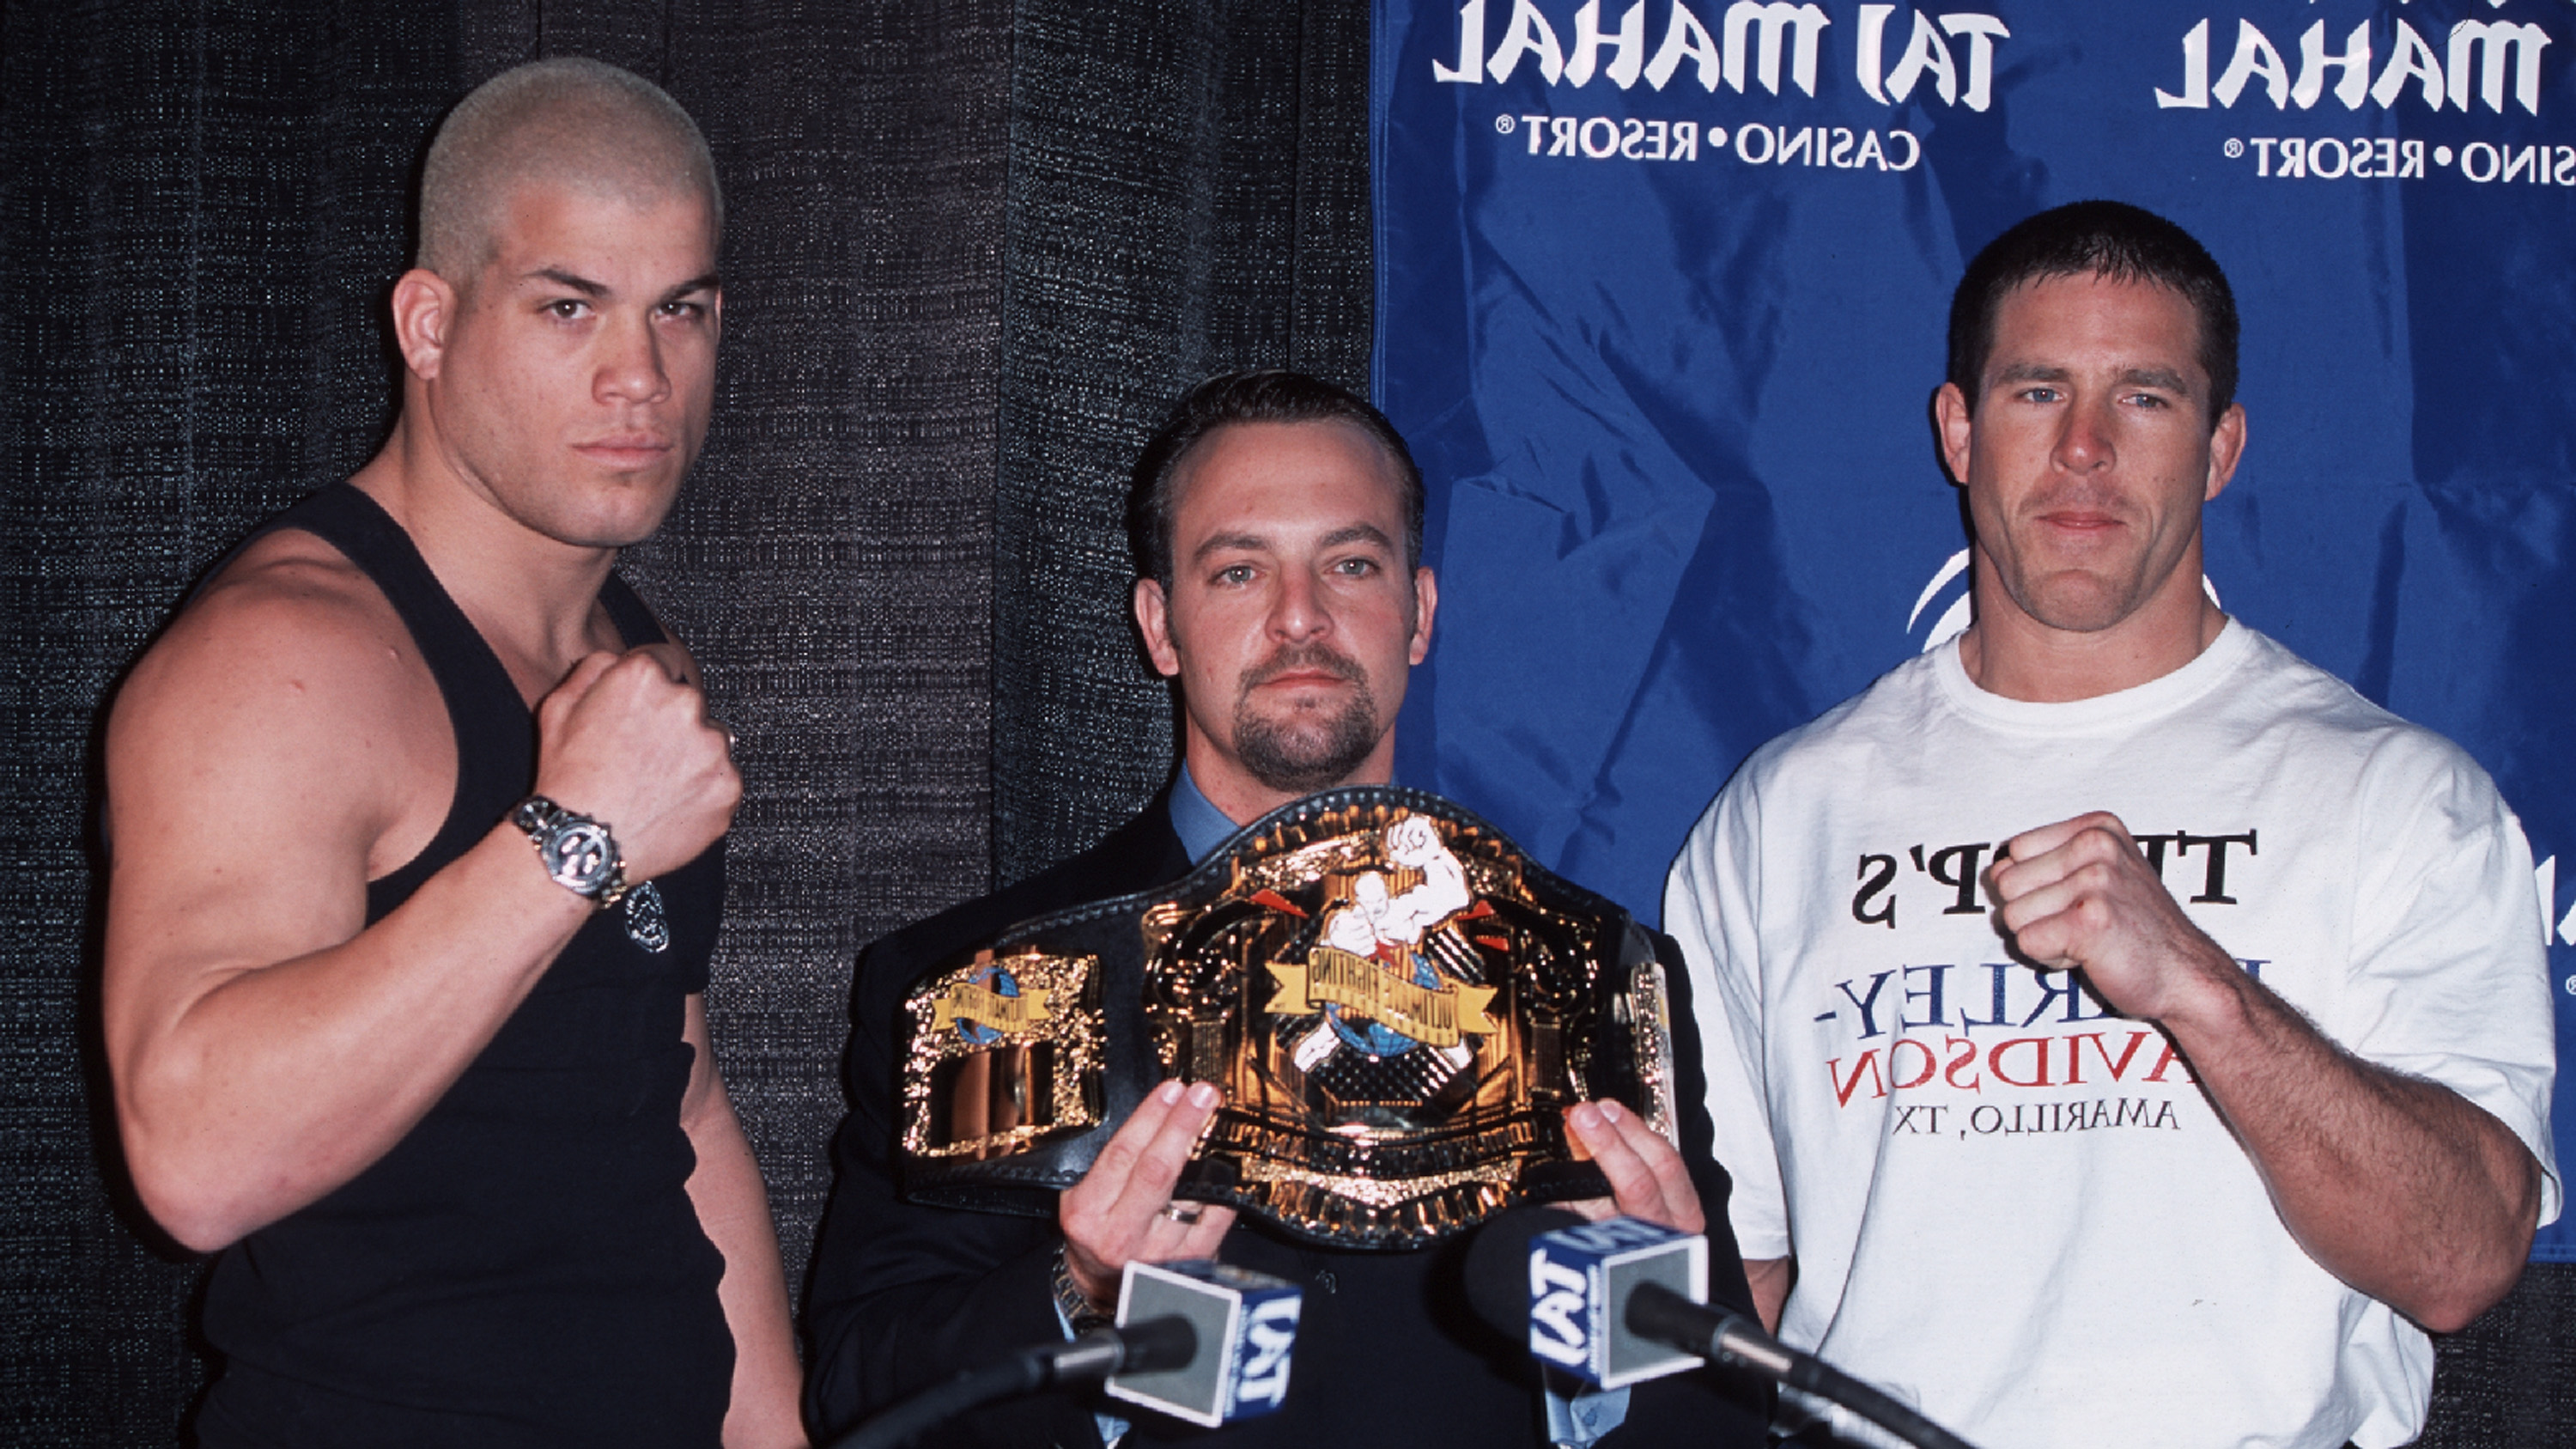 UFC CEO Lorenzo Fertitta (middle) stands in between UFC 30 opponents Tito Ortiz and Evan Tanner during the first-ever UFC event under the Zuffa banner.